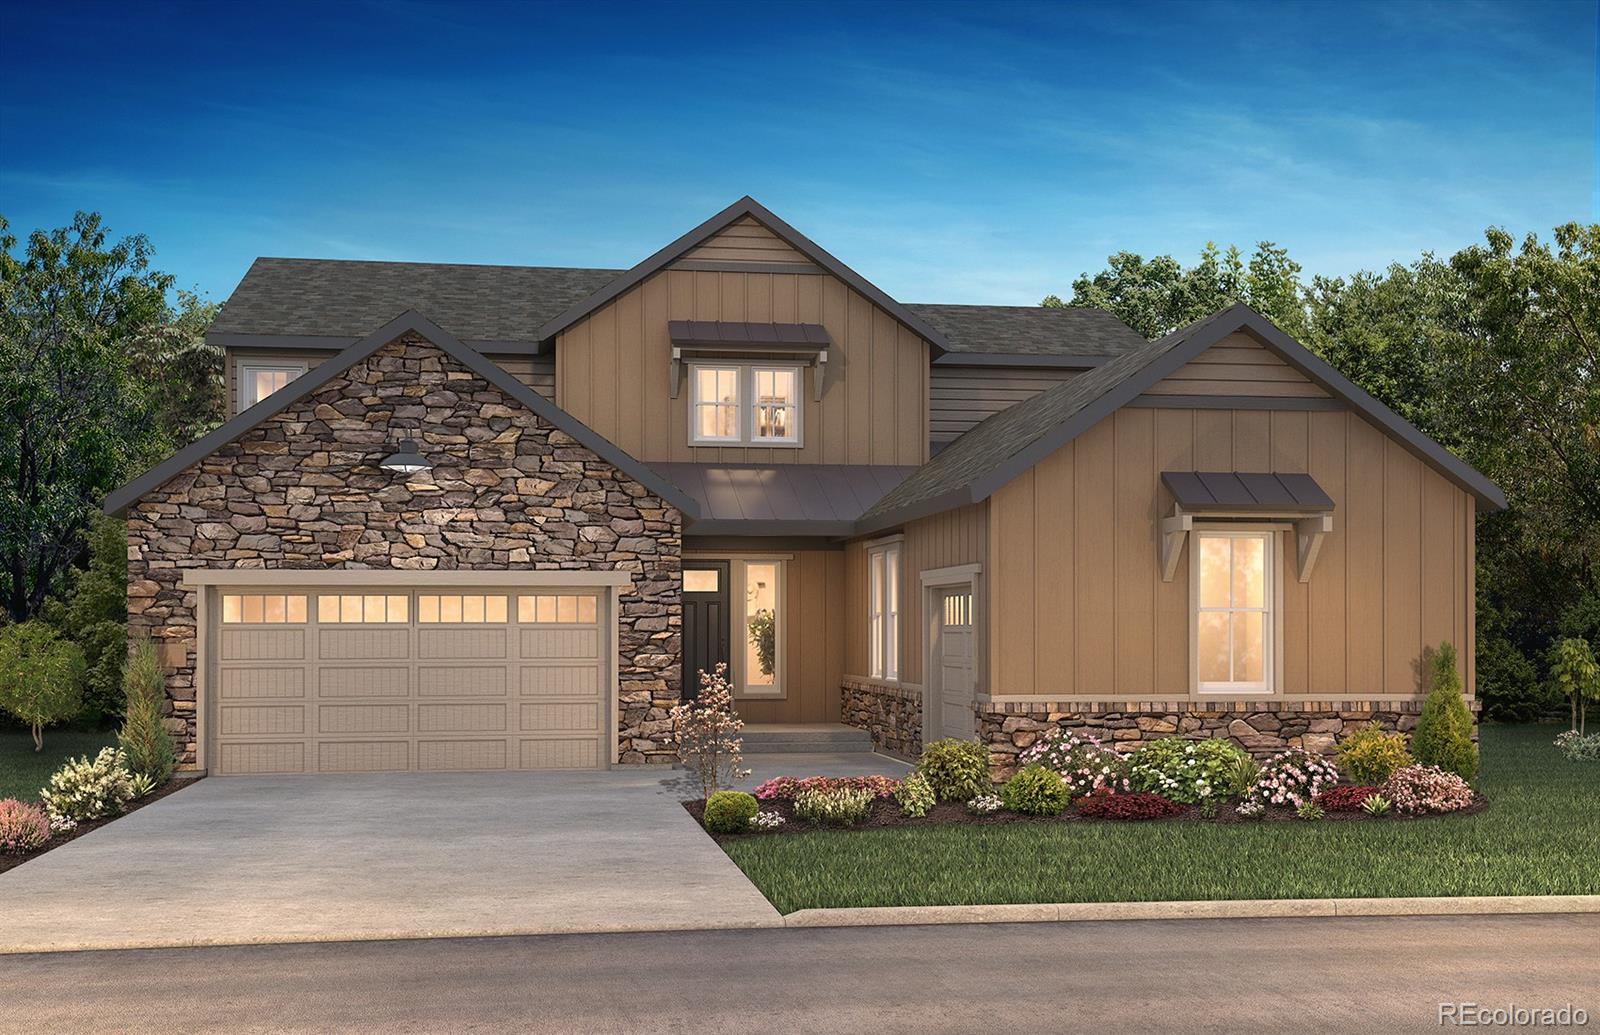 """This gorgeous 2-story Stonehaven in The Canyons features 5 beds (2 main / 3 upper), 5.5 baths (each bedroom has a private bath), great room, dining room, gourmet kitchen, main floor laundry, unfinished walk-out basement and 3 car garage (2 + 1 bay). Beautiful designer finishes and upgrades throughout including 48"""" GE Monogram stainless steel gas appliances including GE Cafe French door refrigerator and GE Monogram beverage center refrigerator; Shaw Supino Ardesia wood-style laminate floors, tile floors in the bath and laundry rooms, Carrara Mist engineered stone counters with a full tile backsplash at the kitchen, Stellar Gray engineered stone counters at the master bath and KitchenCraft® Salem Nimbus and Alabaster cabinetry; Great room with primo fireplace with stacked stone and multi-slide sliding glass door; Craftsman stair rail with iron balusters; Main-floor laundry with sink, front loading washer and dryer included. This stunning home thoughtfully combines elegance and luxury. Don't miss your opportunity. Welcome Home!"""